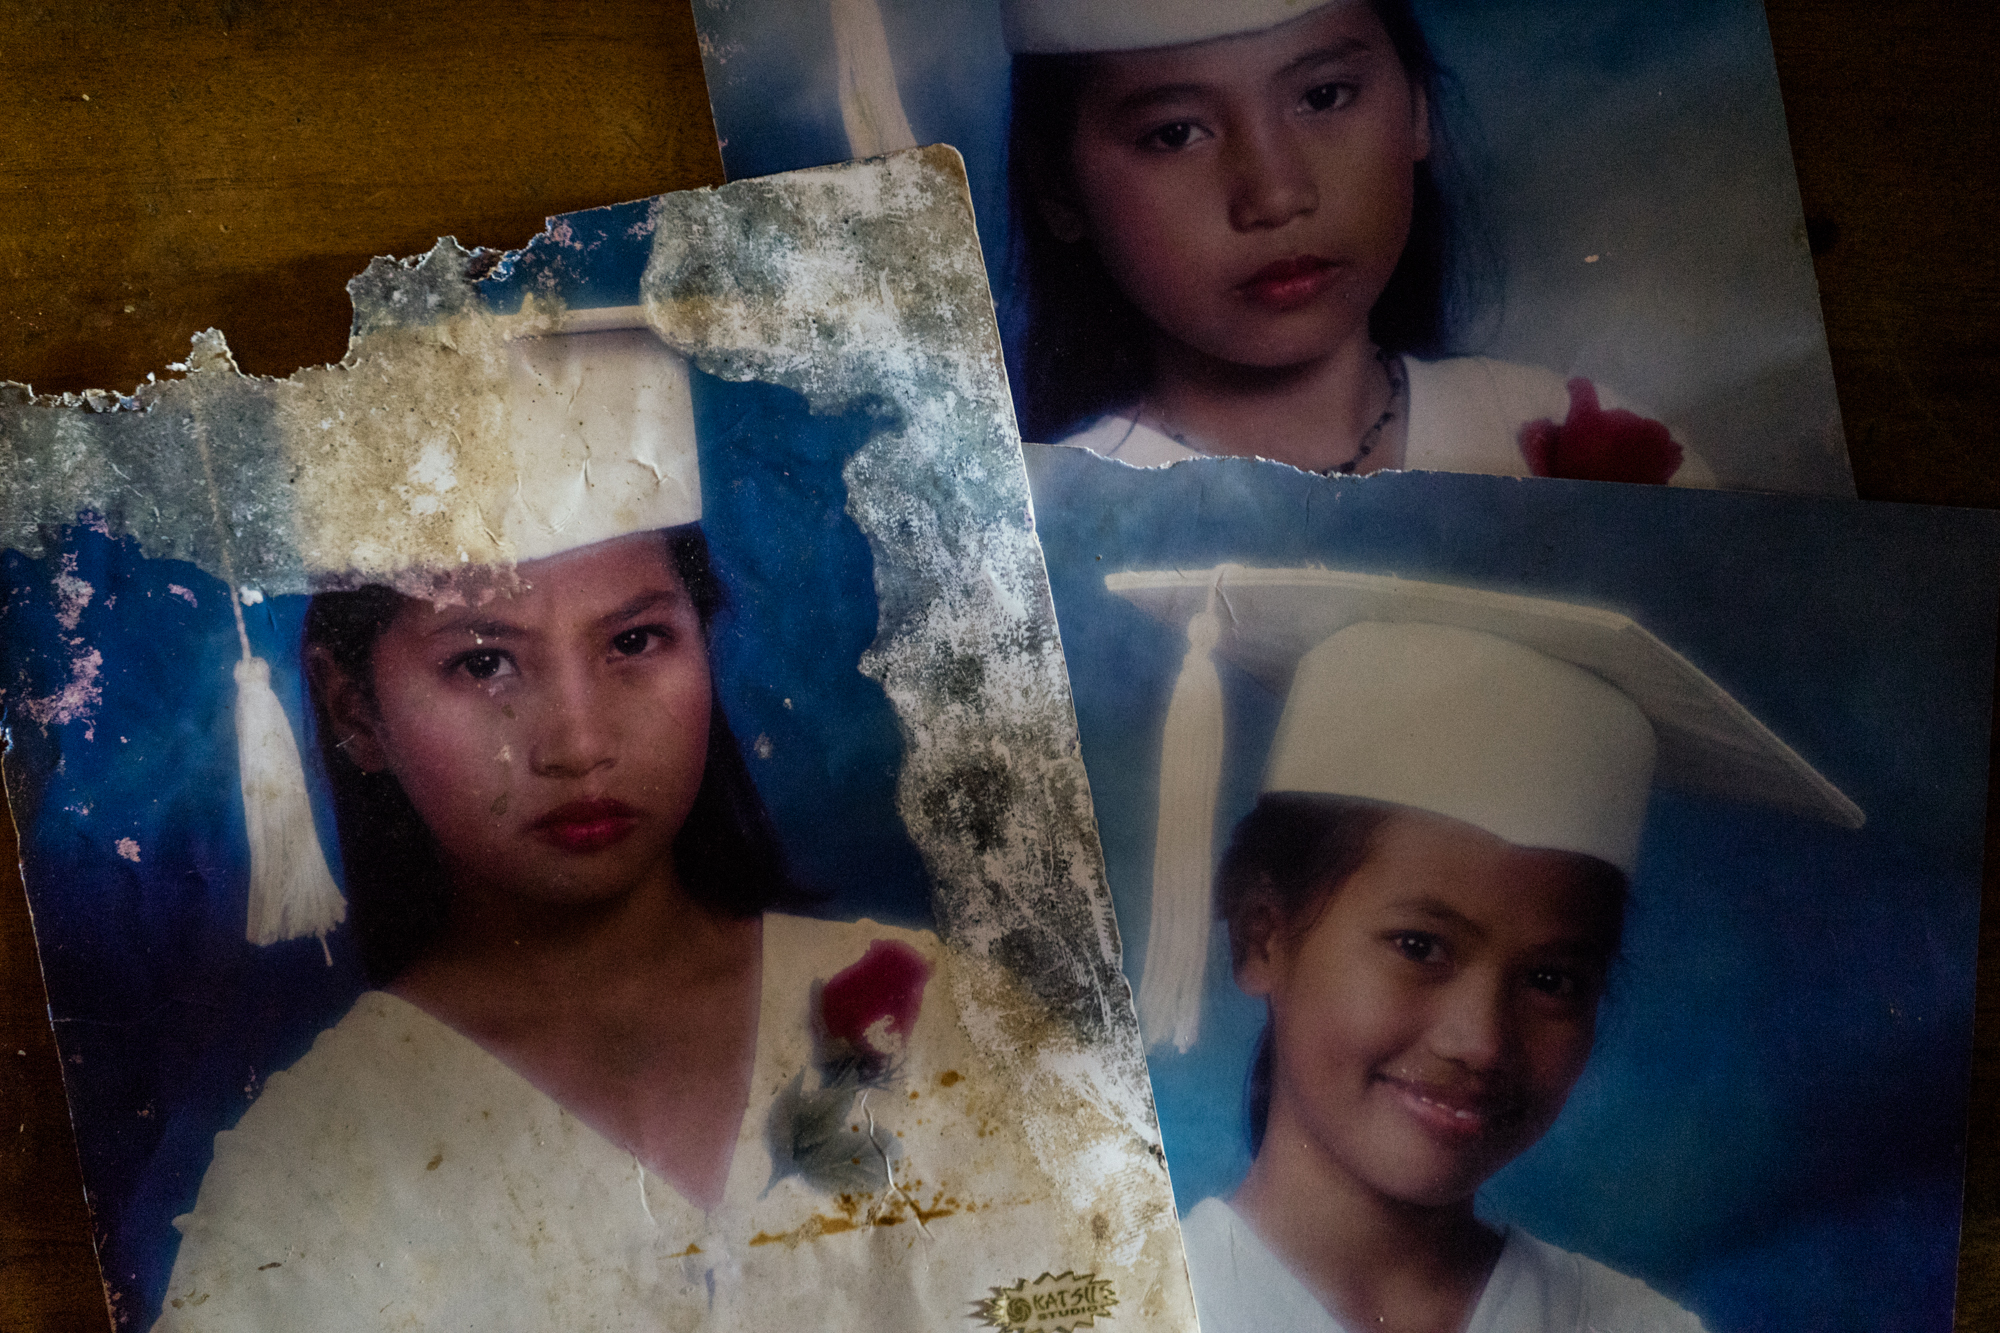 Salvaged water damaged graduation photos of Filipino sisters Jojo (left), Gemma (bottom right) and Joanne (top), in their home in the Visayas. Due to displacement from the frequency of storms, coupled with lack of work opportunities in their hometown, the sisters have all had to enter the sex trade in Angeles, known for its red light district.